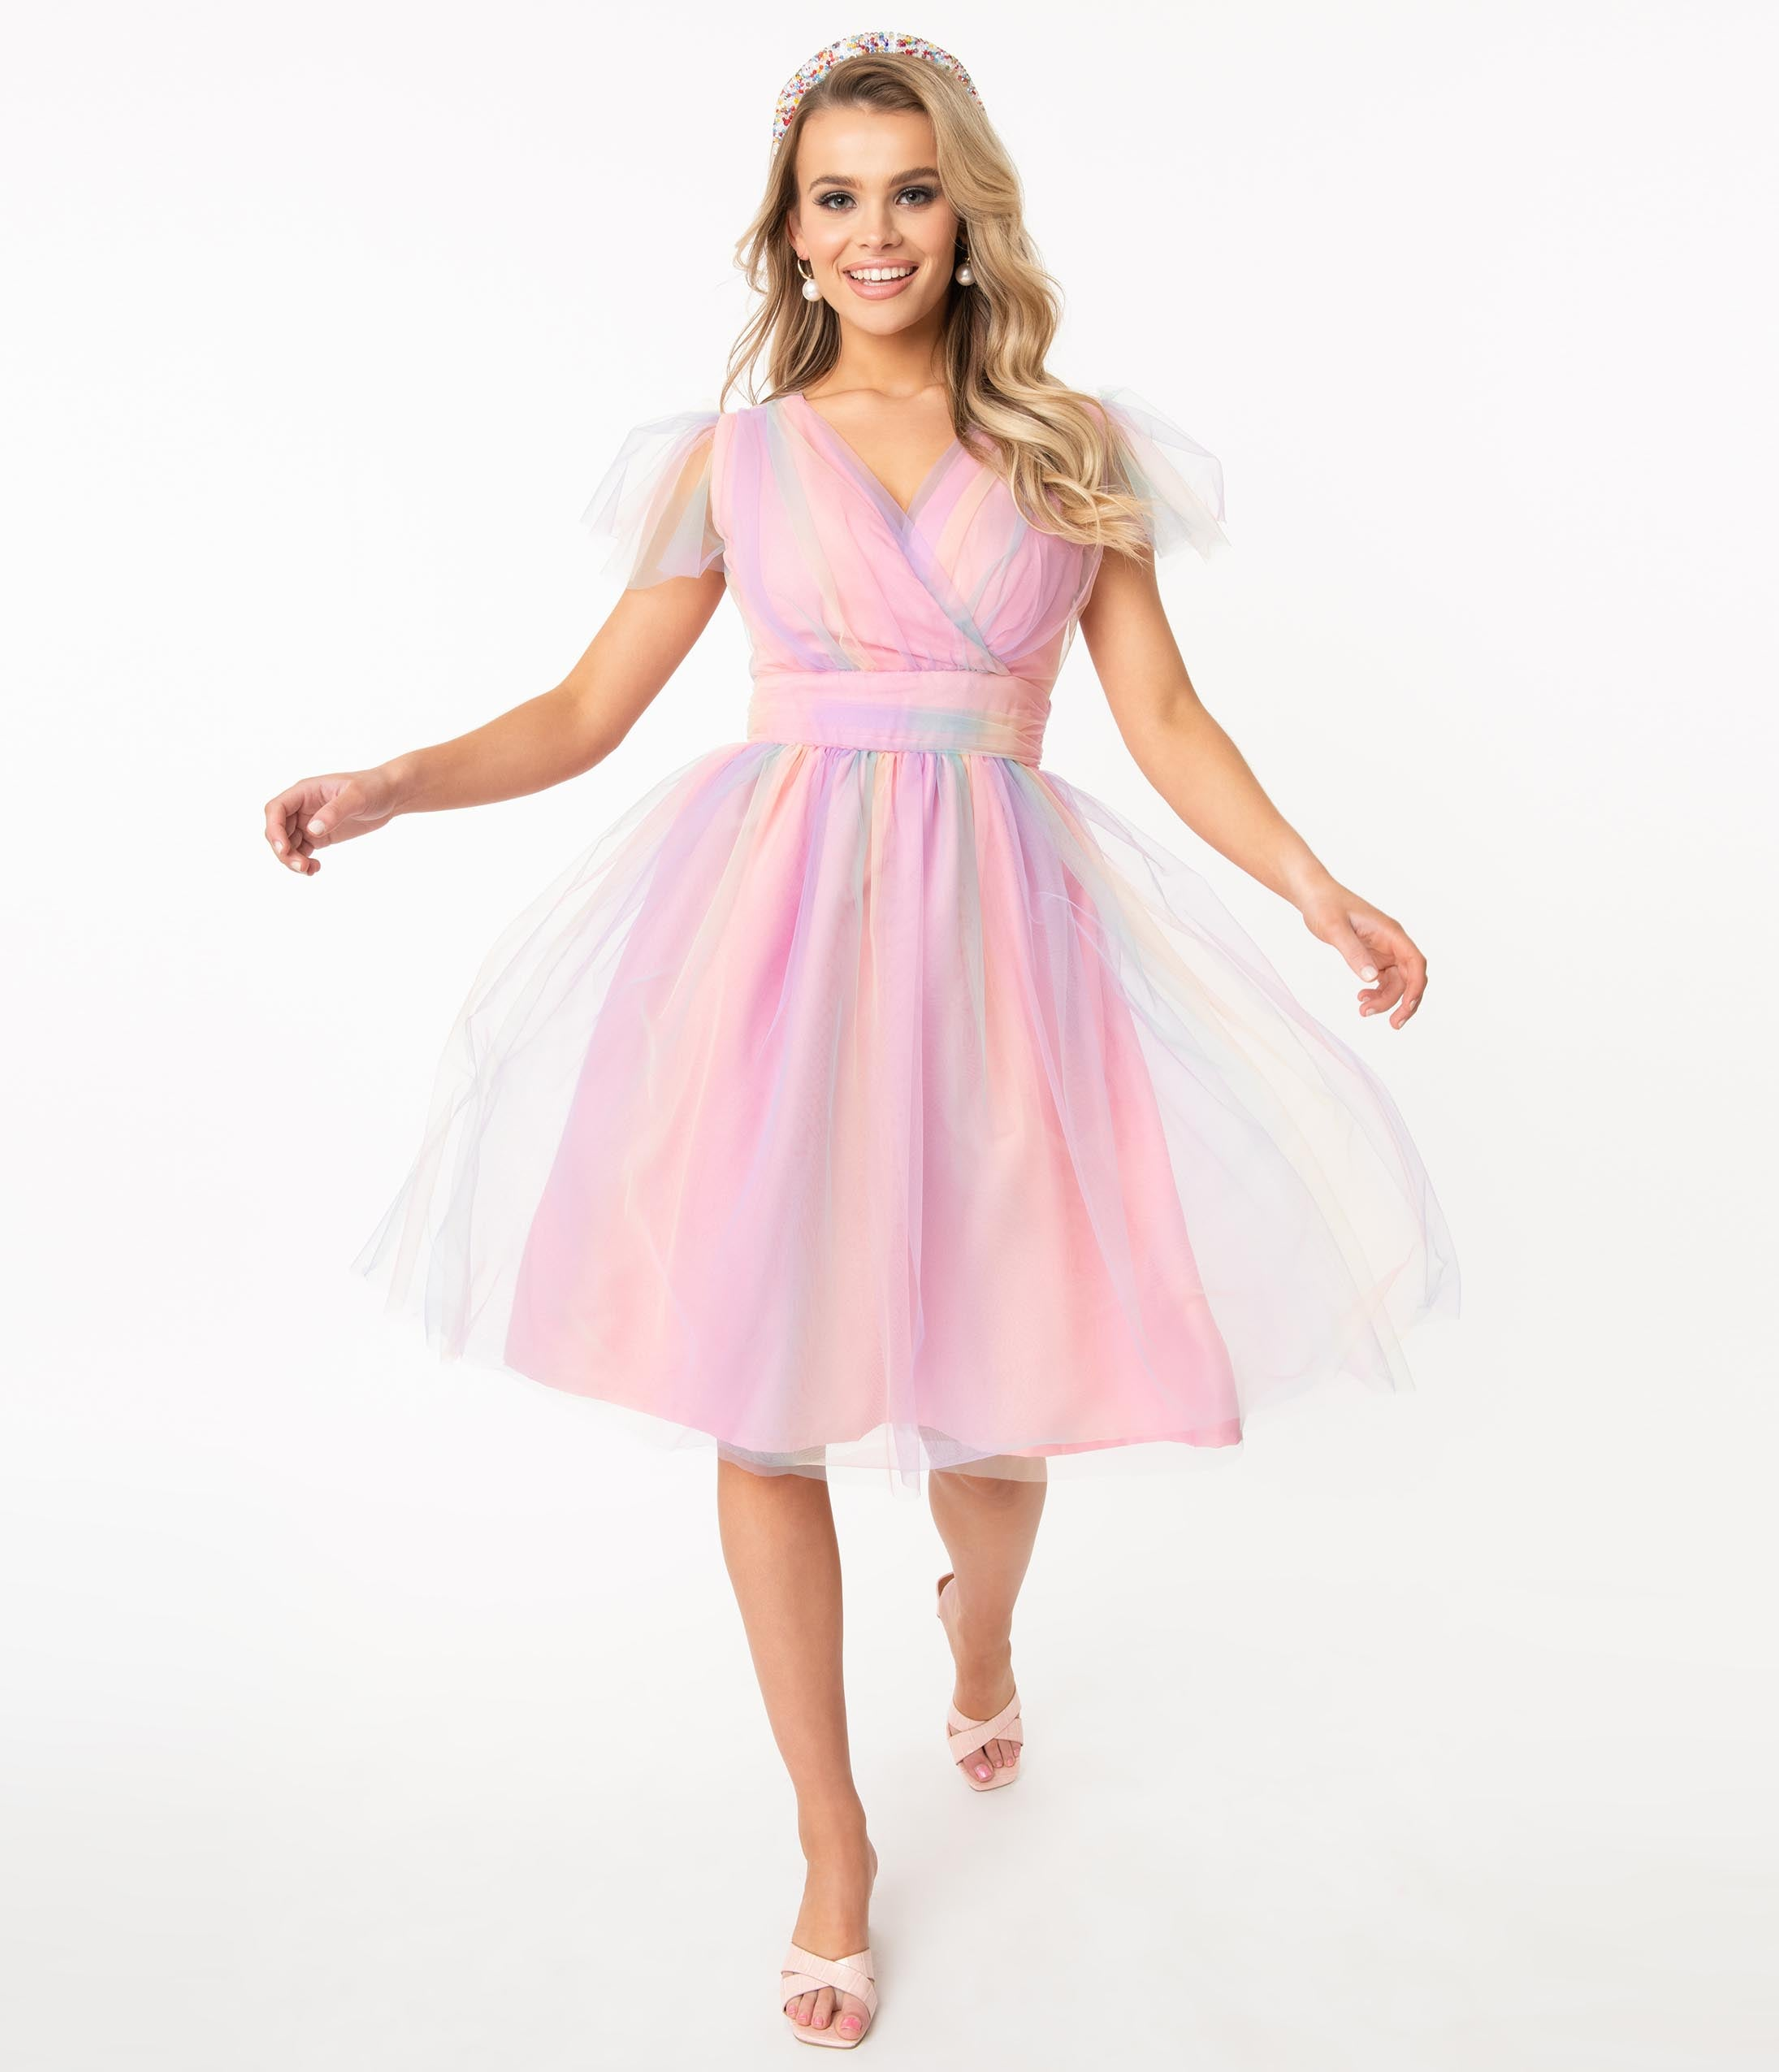 1980s Clothing, Fashion | 80s Style Clothes Pink Rainbow Ombre Tulle Alyssa Swing Dress $88.00 AT vintagedancer.com